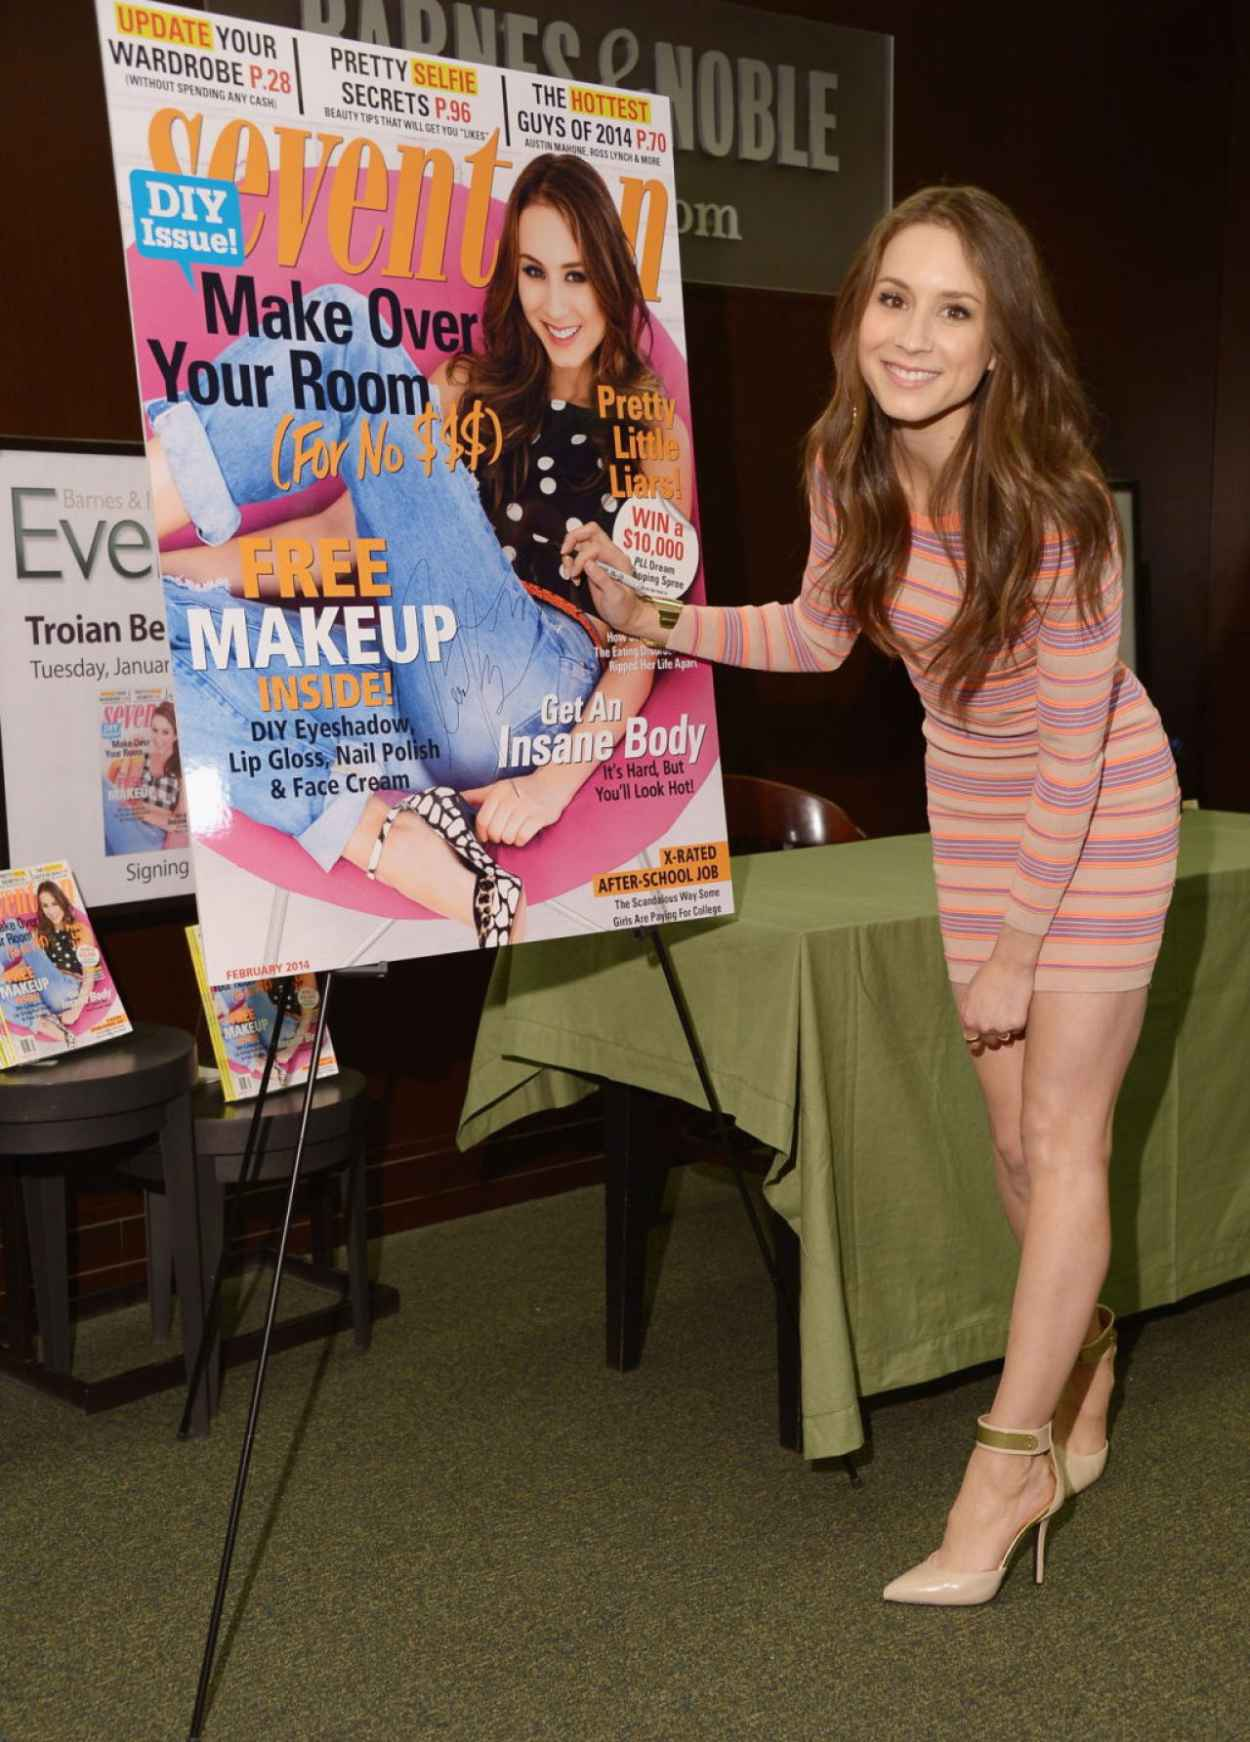 Troian Bellisario - SEVENTEEN Magazine - February Issue Unveiling at Barnes & Noble in New York-1